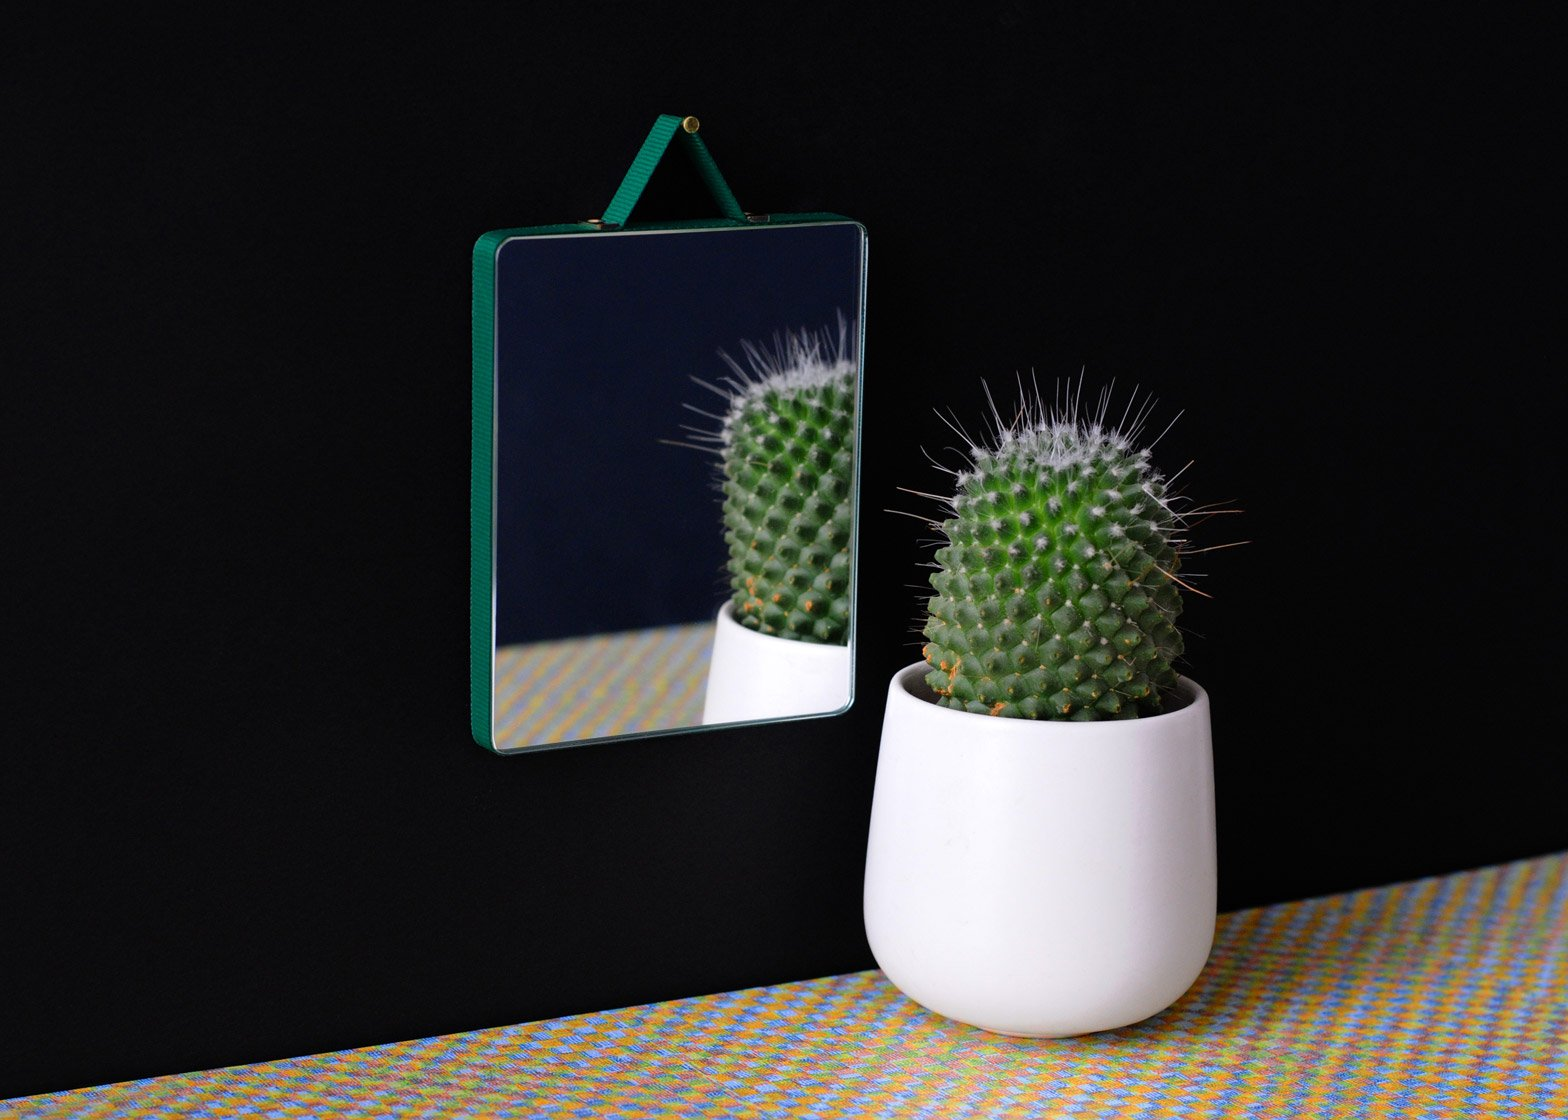 Ruban mirrors for HAY by Inga Semp